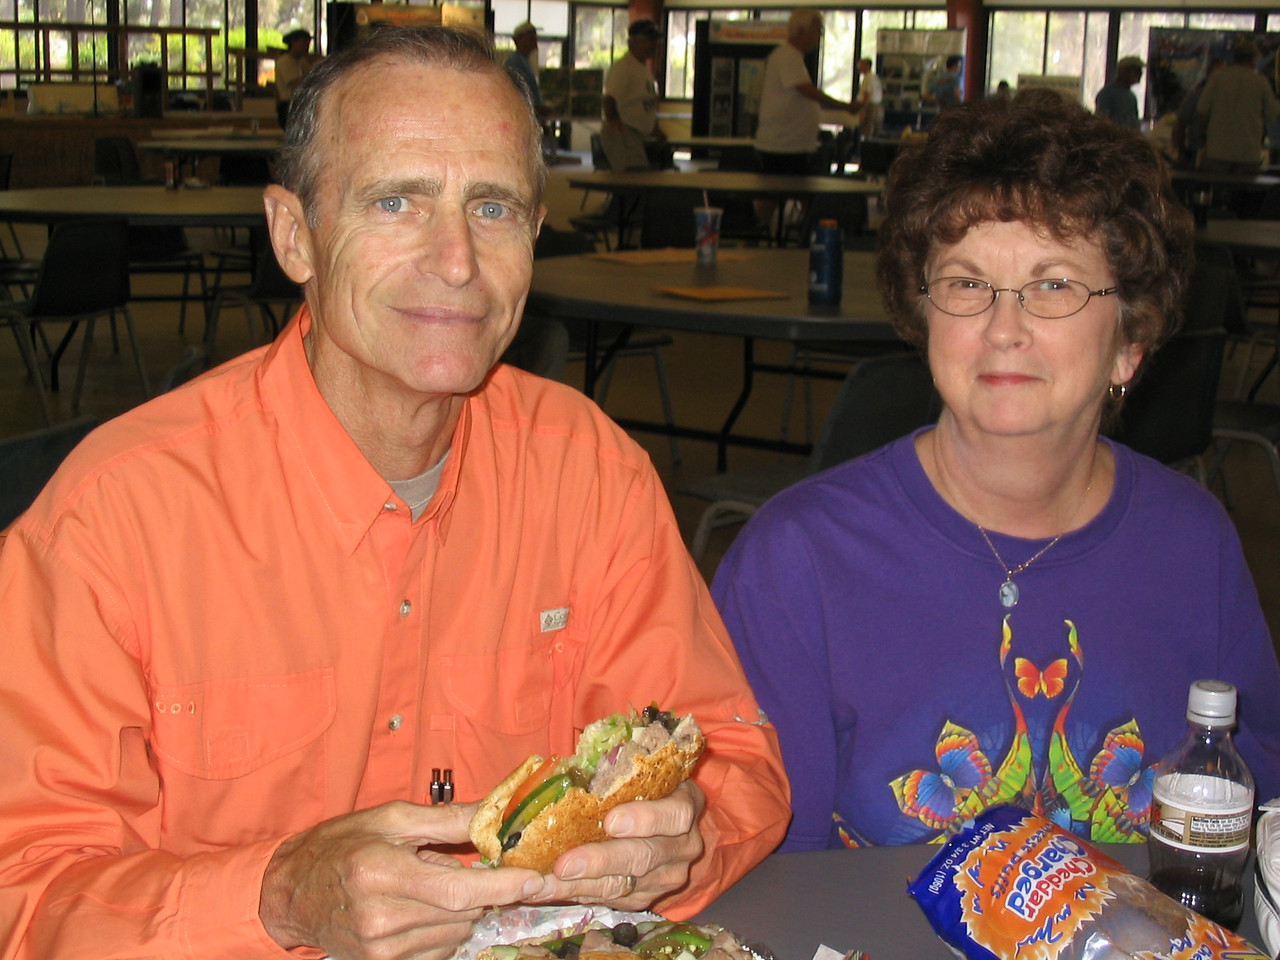 Don and Gloria Neale<br /> PHOTO CREDIT: Diane Wilkins / Florida Trail Association